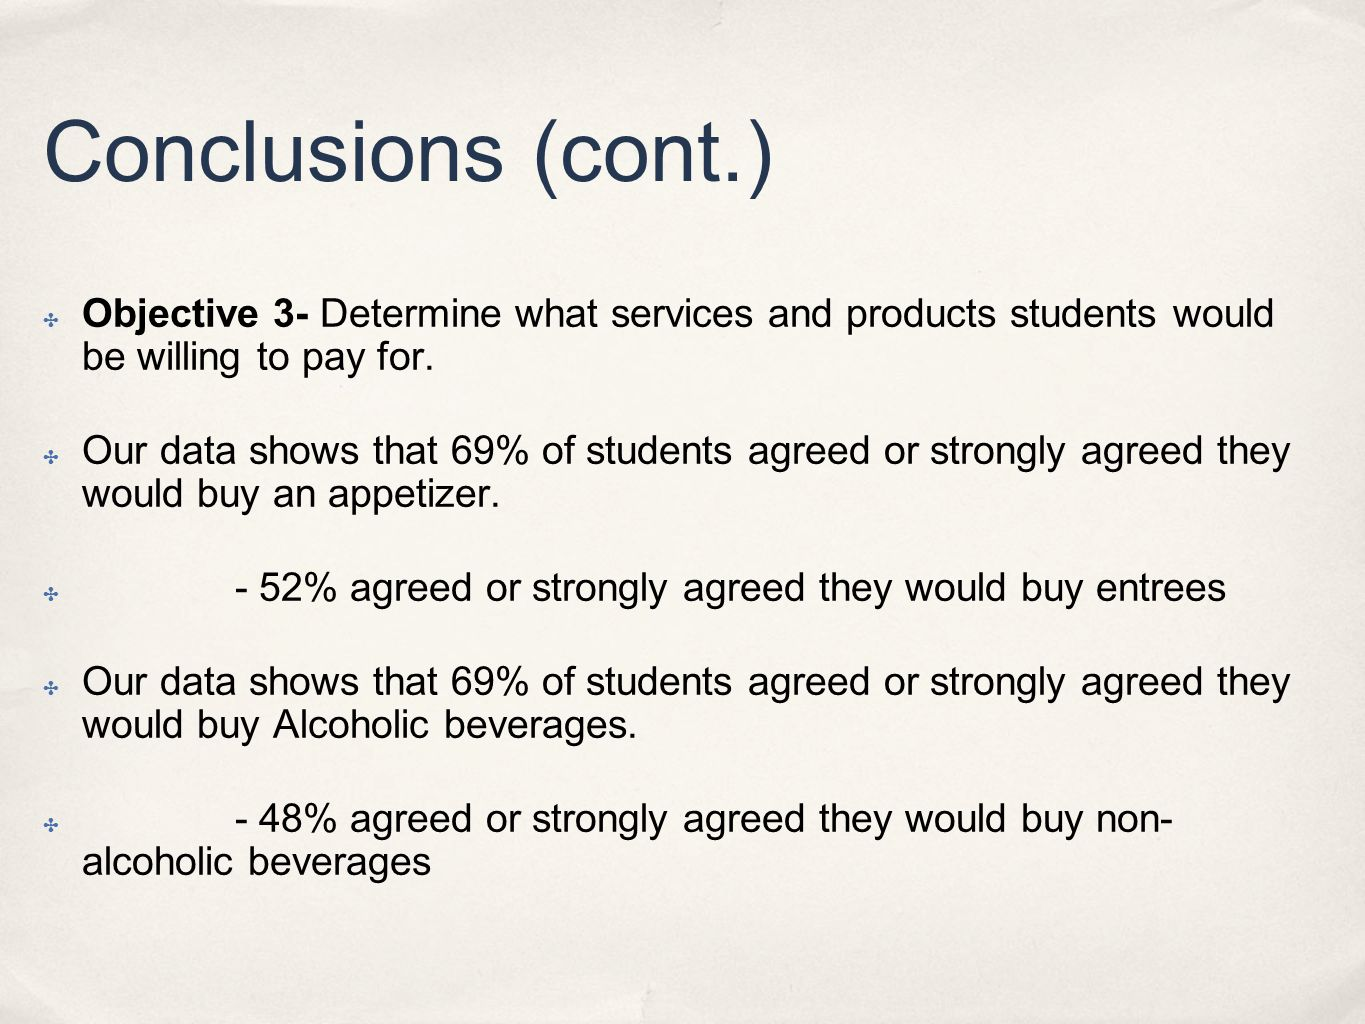 Conclusions (cont.) Objective 3- Determine what services and products students would be willing to pay for.